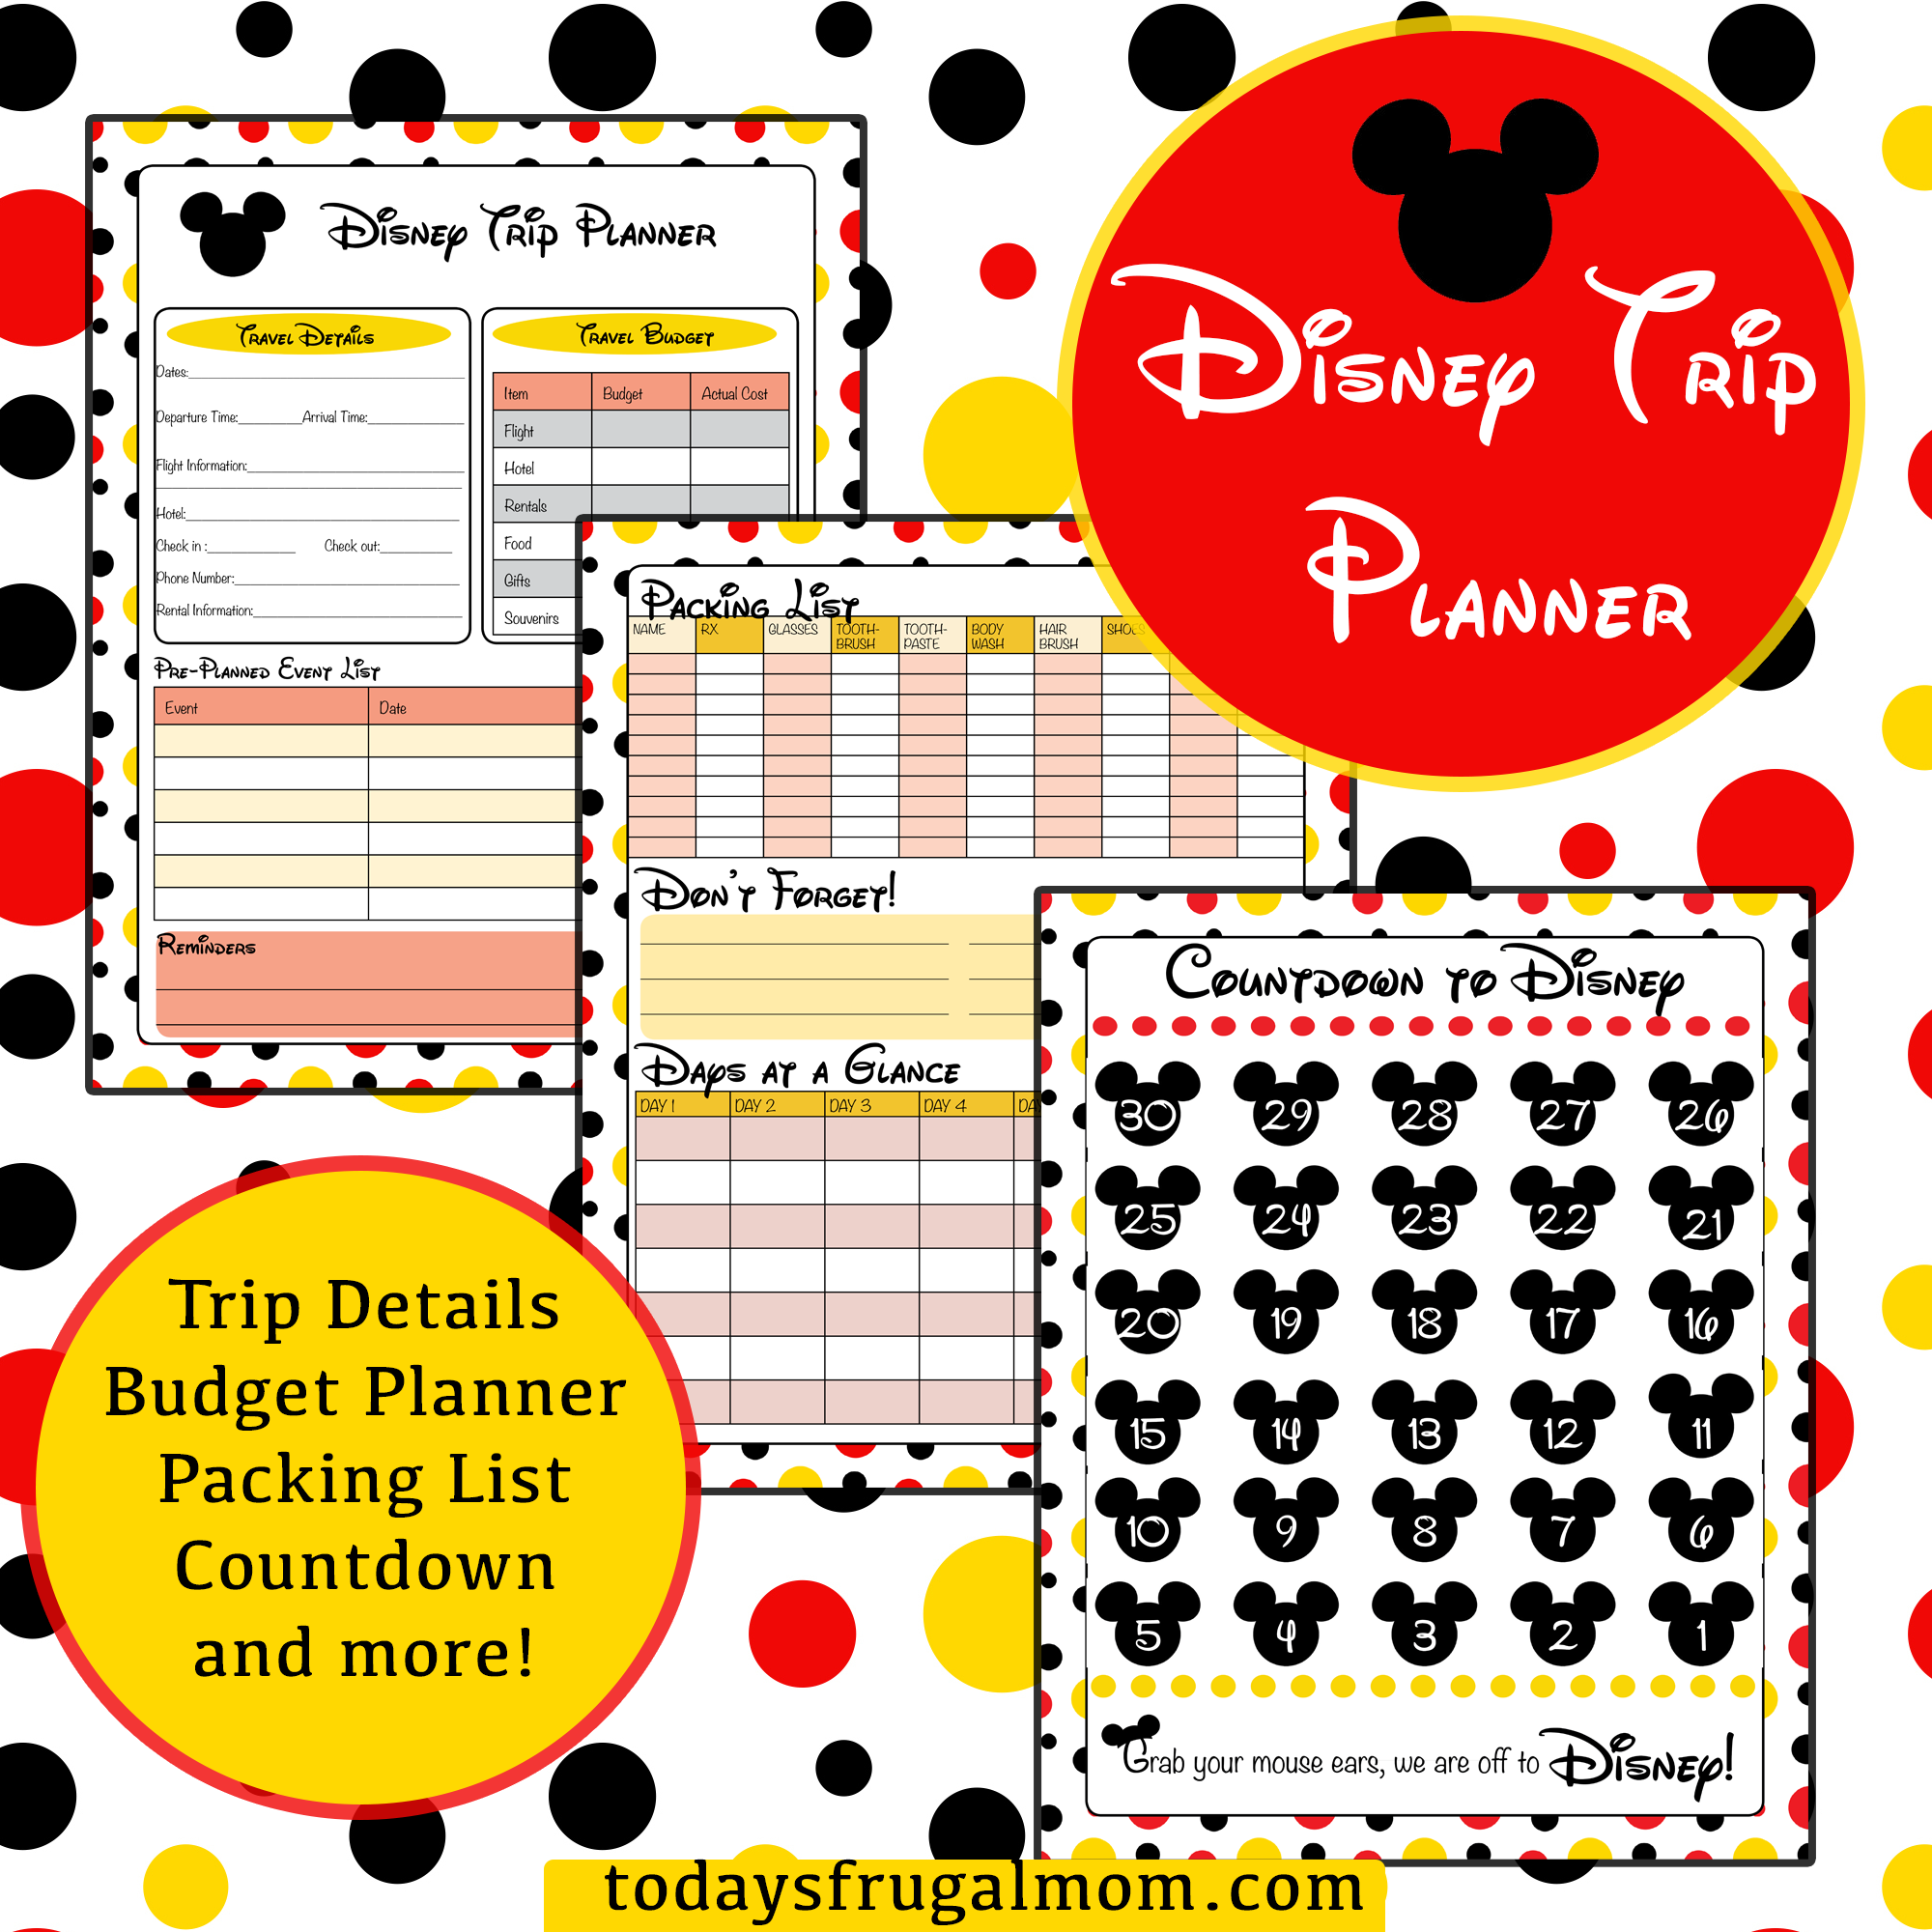 Are you planning a trip to Disney soon If so come